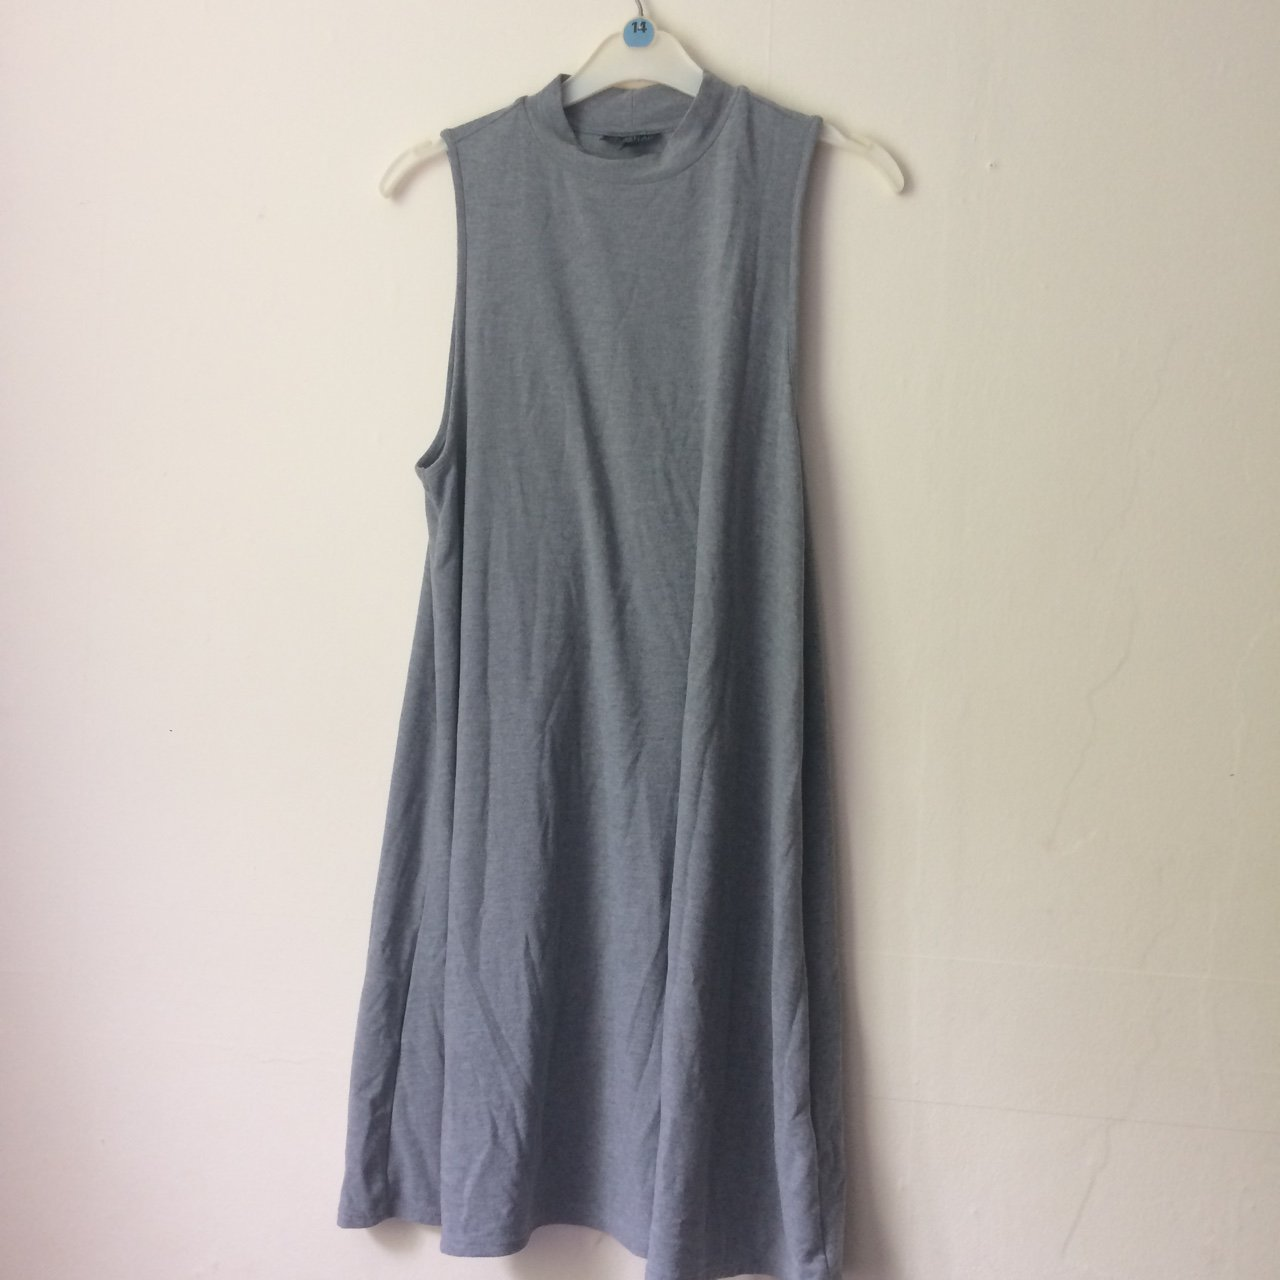 7c3aa0ff29 Grey knee length skater dress with turtleneck originally but - Depop